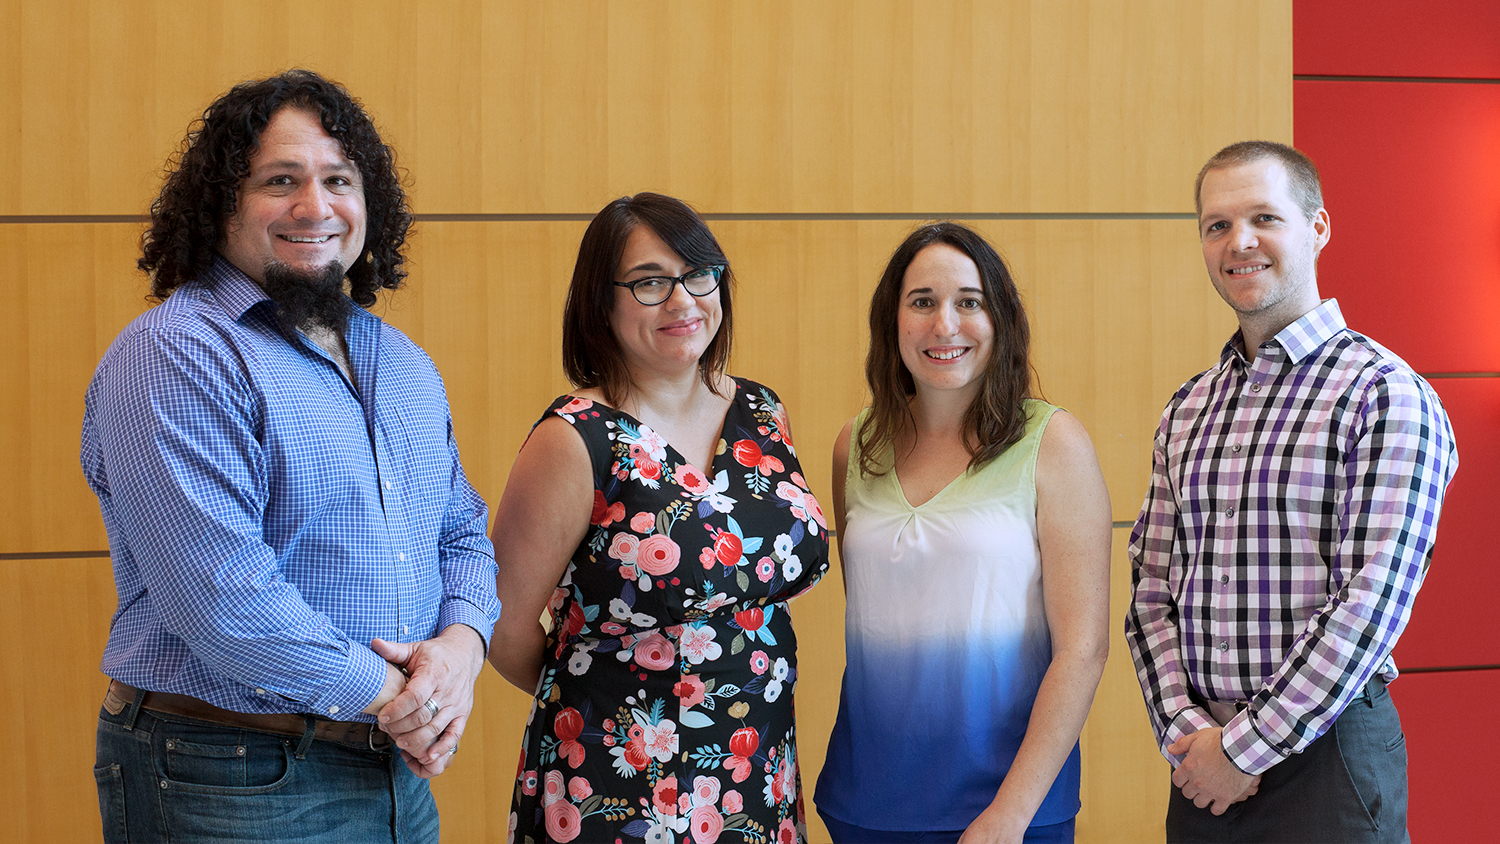 Image of DELTA 2018-2019 DELTA Faculty Fellows in the CTI lobby. Standing left to right: James McConnell, Melissa Ramirez, Stacy Supak, and Justin Post.